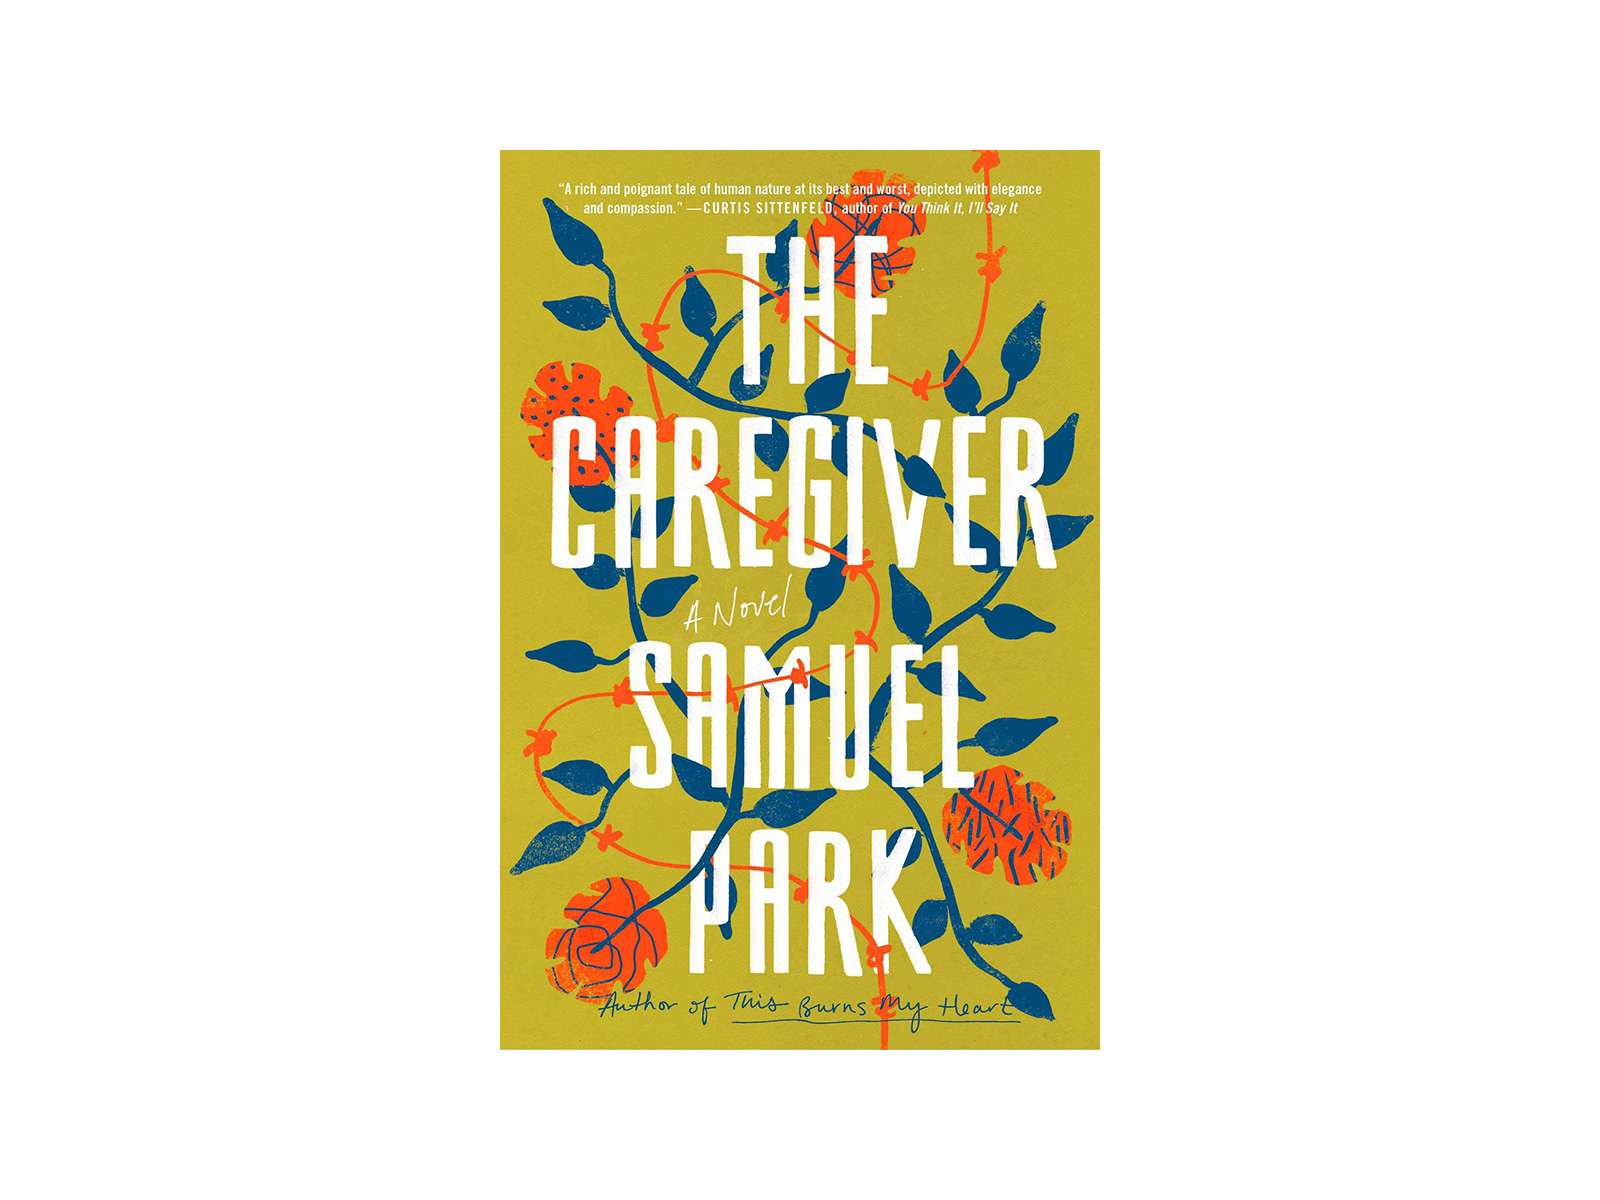 The Caregiver, by Samuel Park